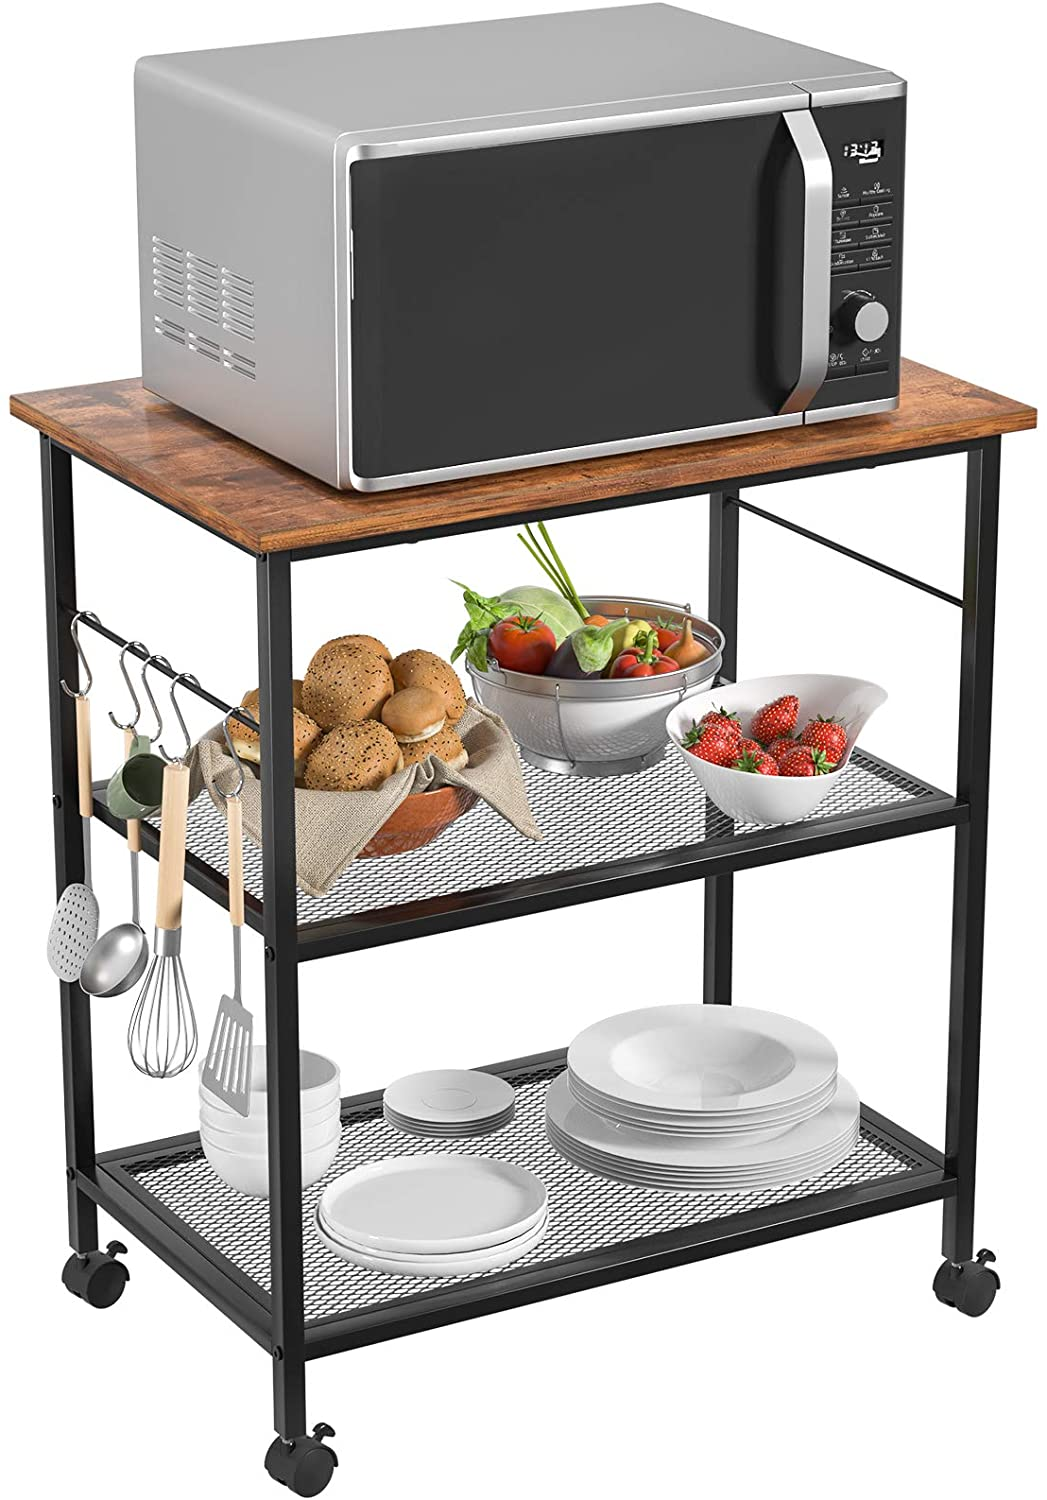 Homfio Kitchen Microwave Cart Utility Storage Rack 3 Tier Baker S Rack End Side Table Storage Office Shelf Lamp Table Rolling Cart With Wheels And 5 Hooks For Living Room Bedroom Furniture Berkeley Technology